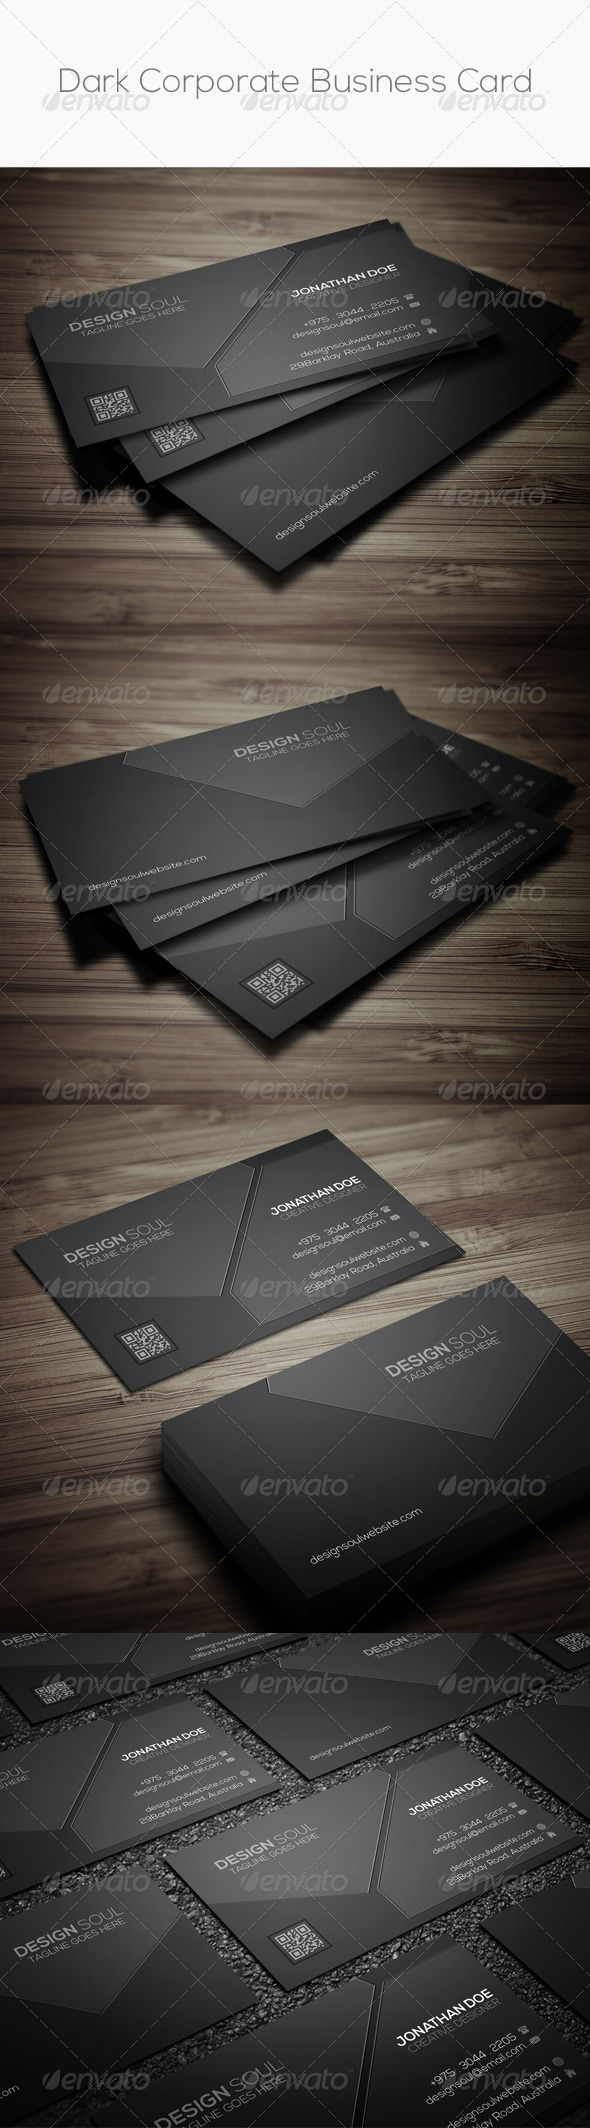 GraphicRiver Dark Corporate Business Card 8411907